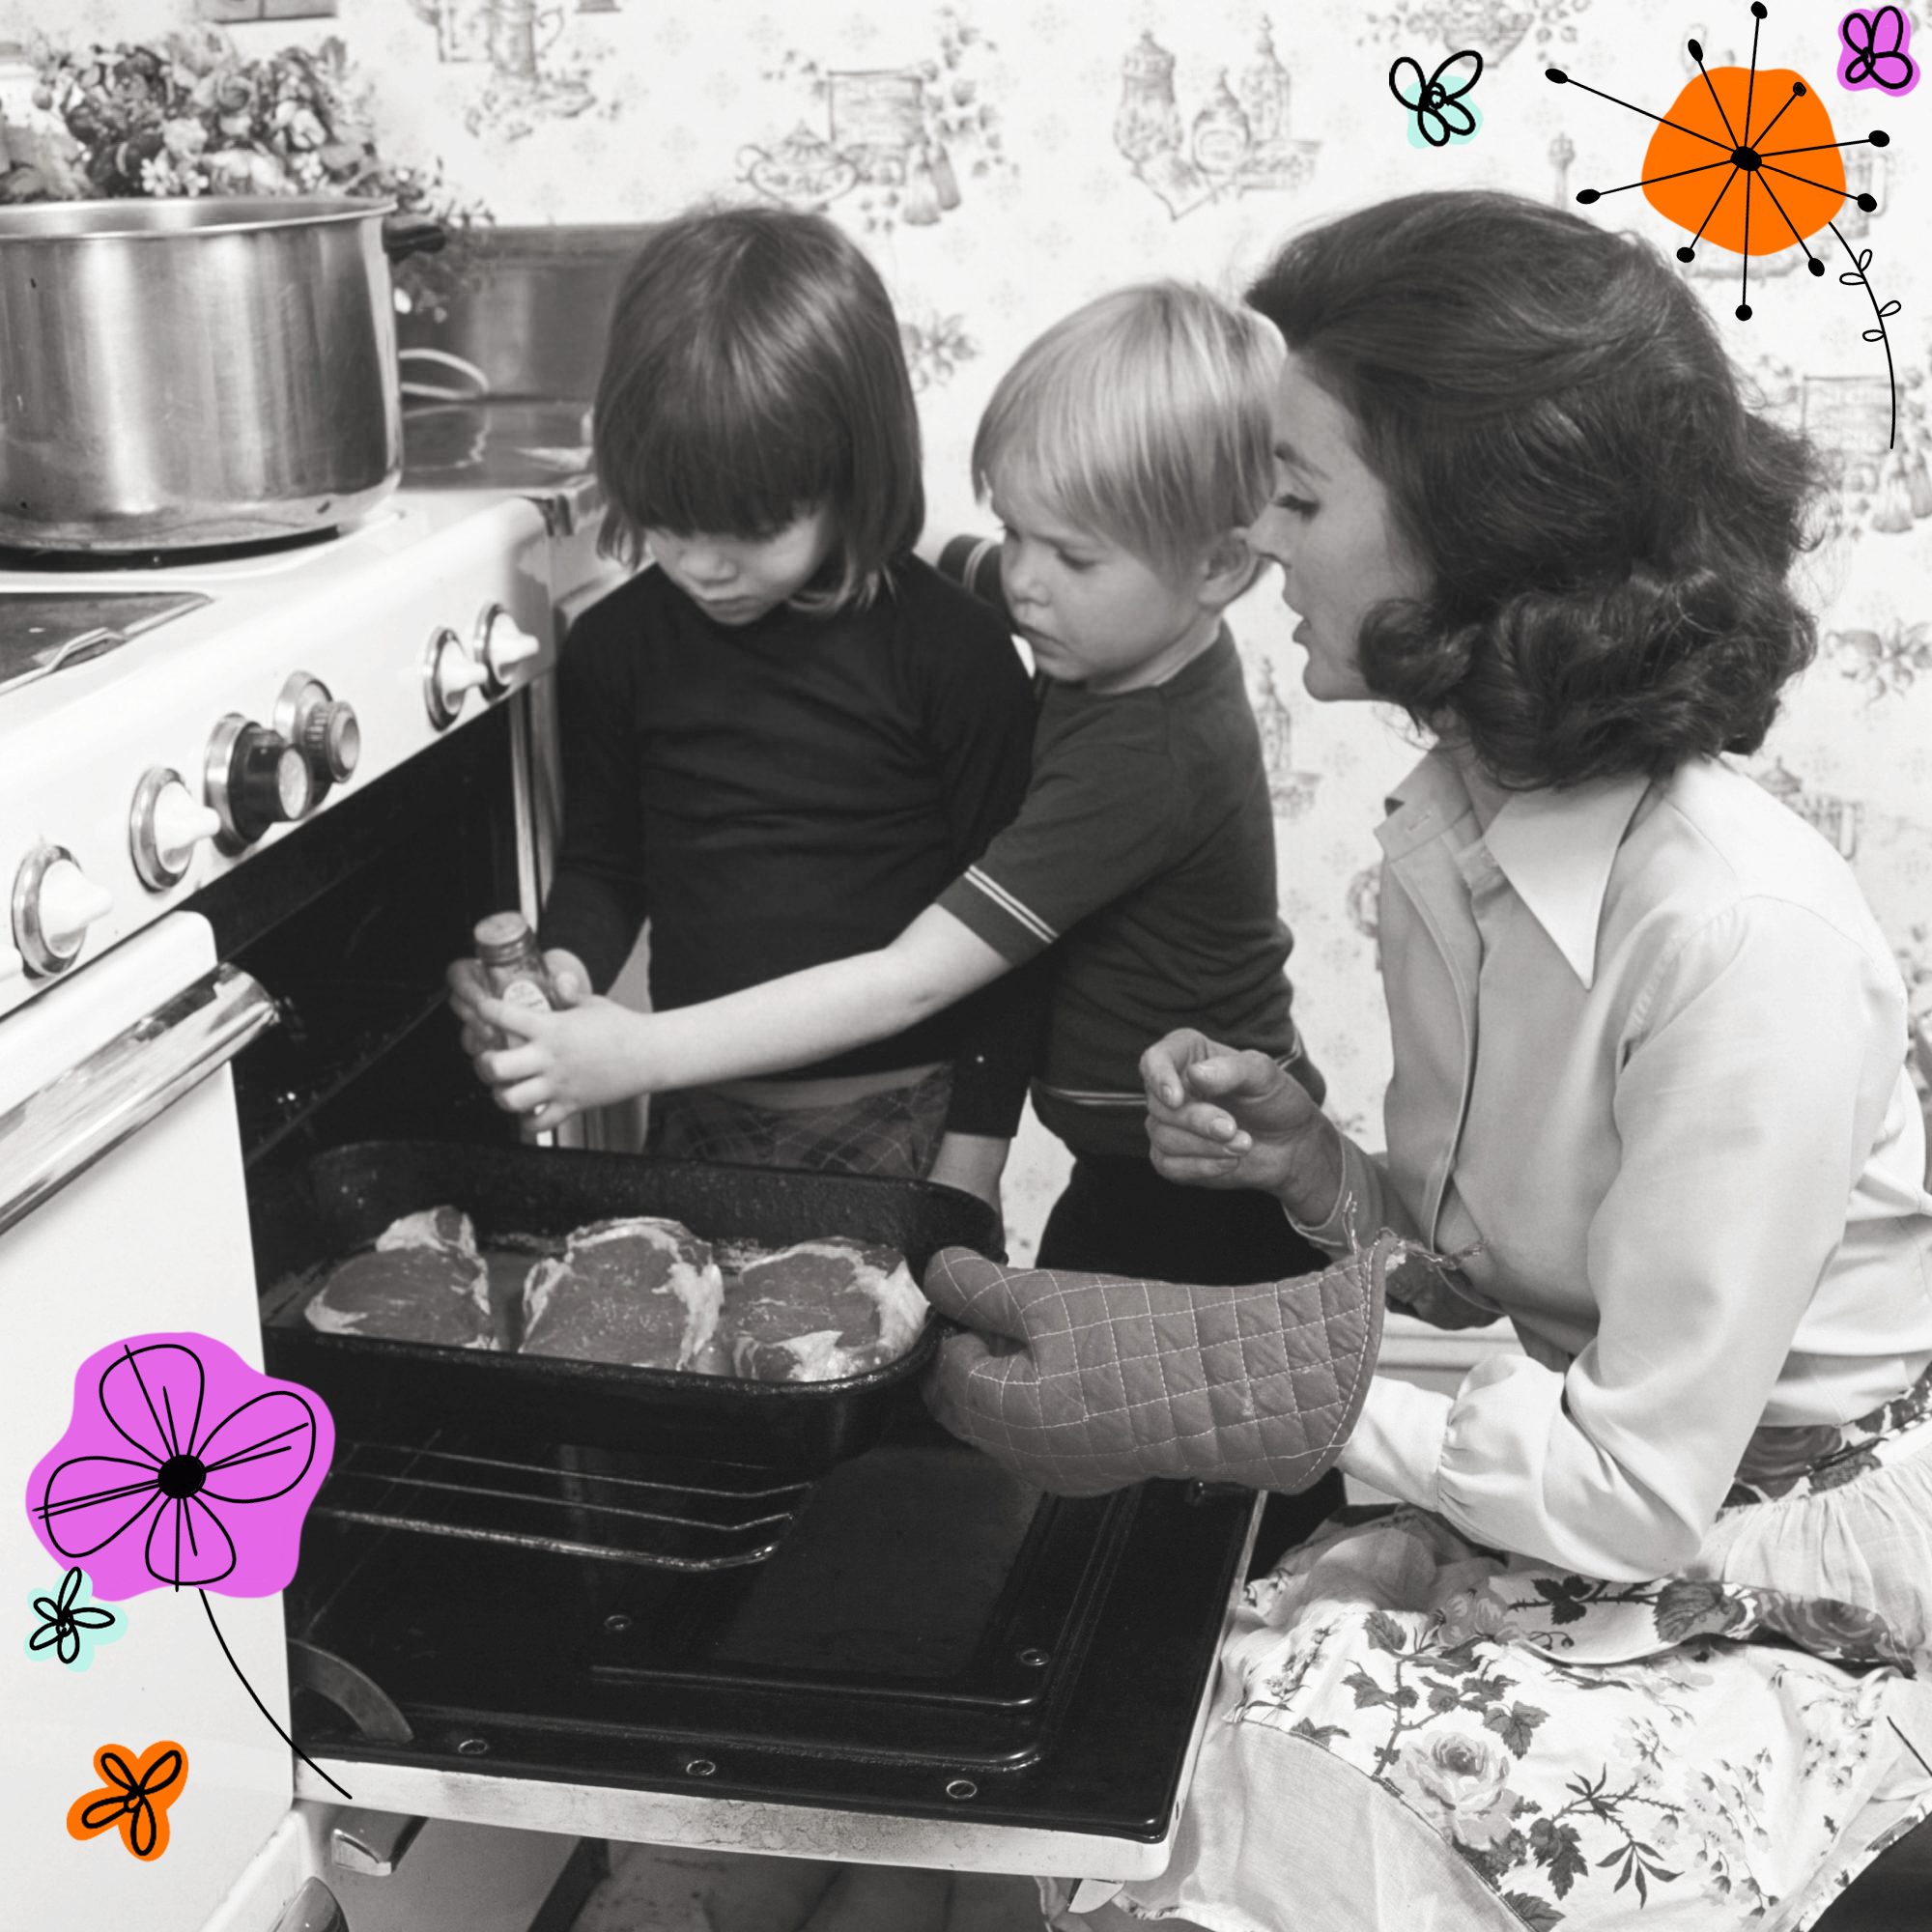 mother and two children over an open oven